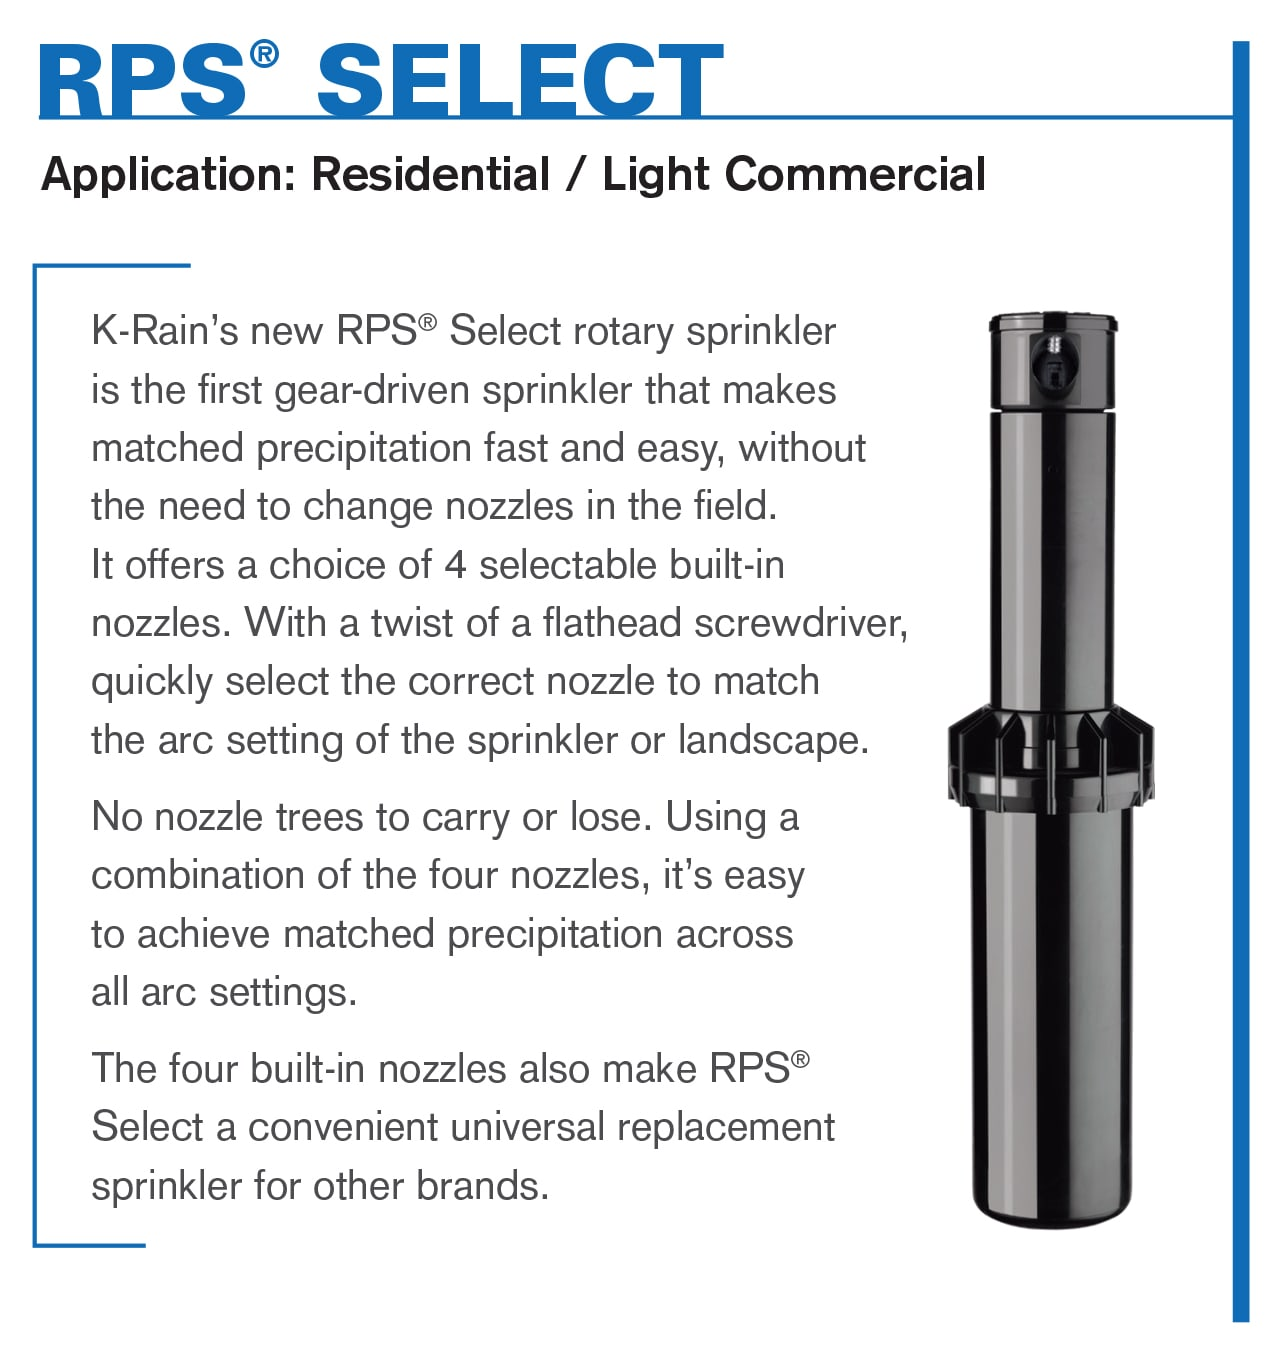 RPS Select Rotary Sprinkler